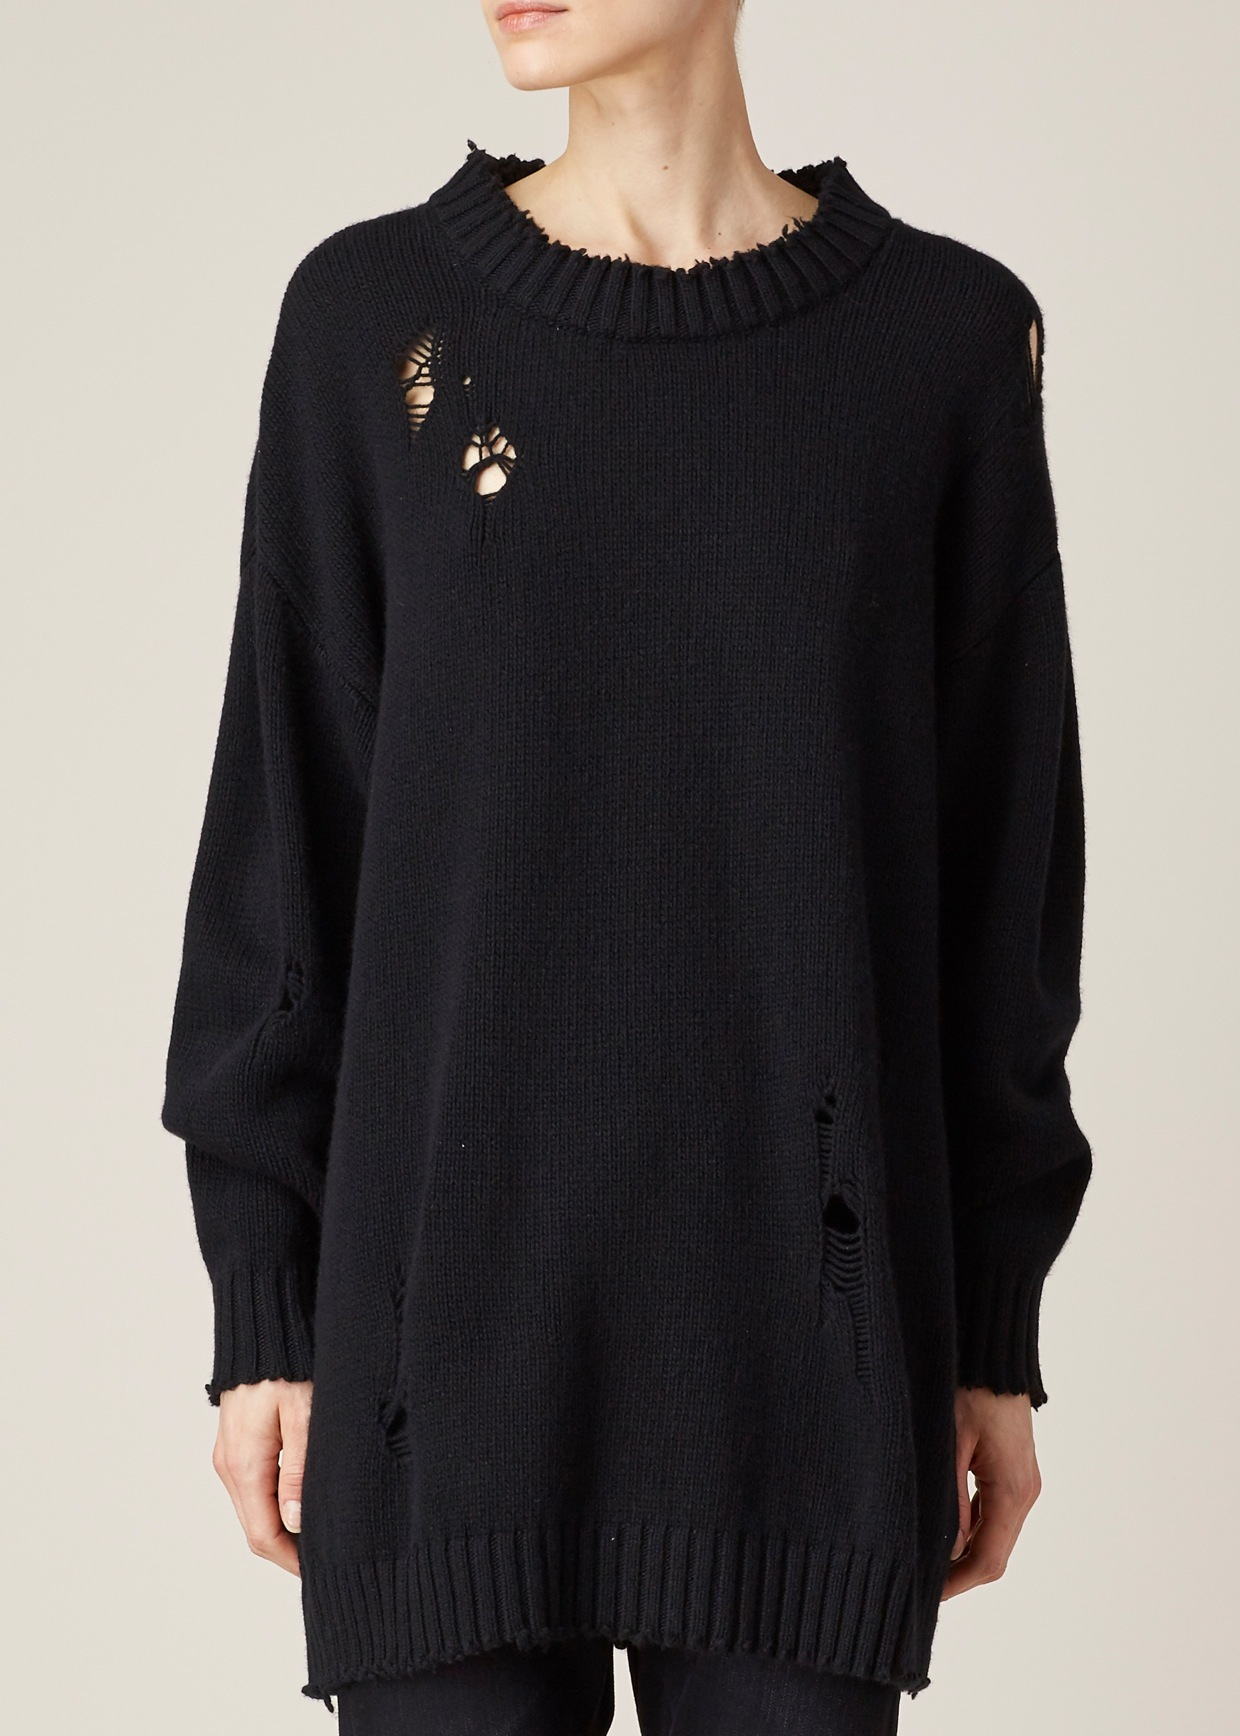 R13 Black Big Slouchy Crew Sweater in Black | Lyst